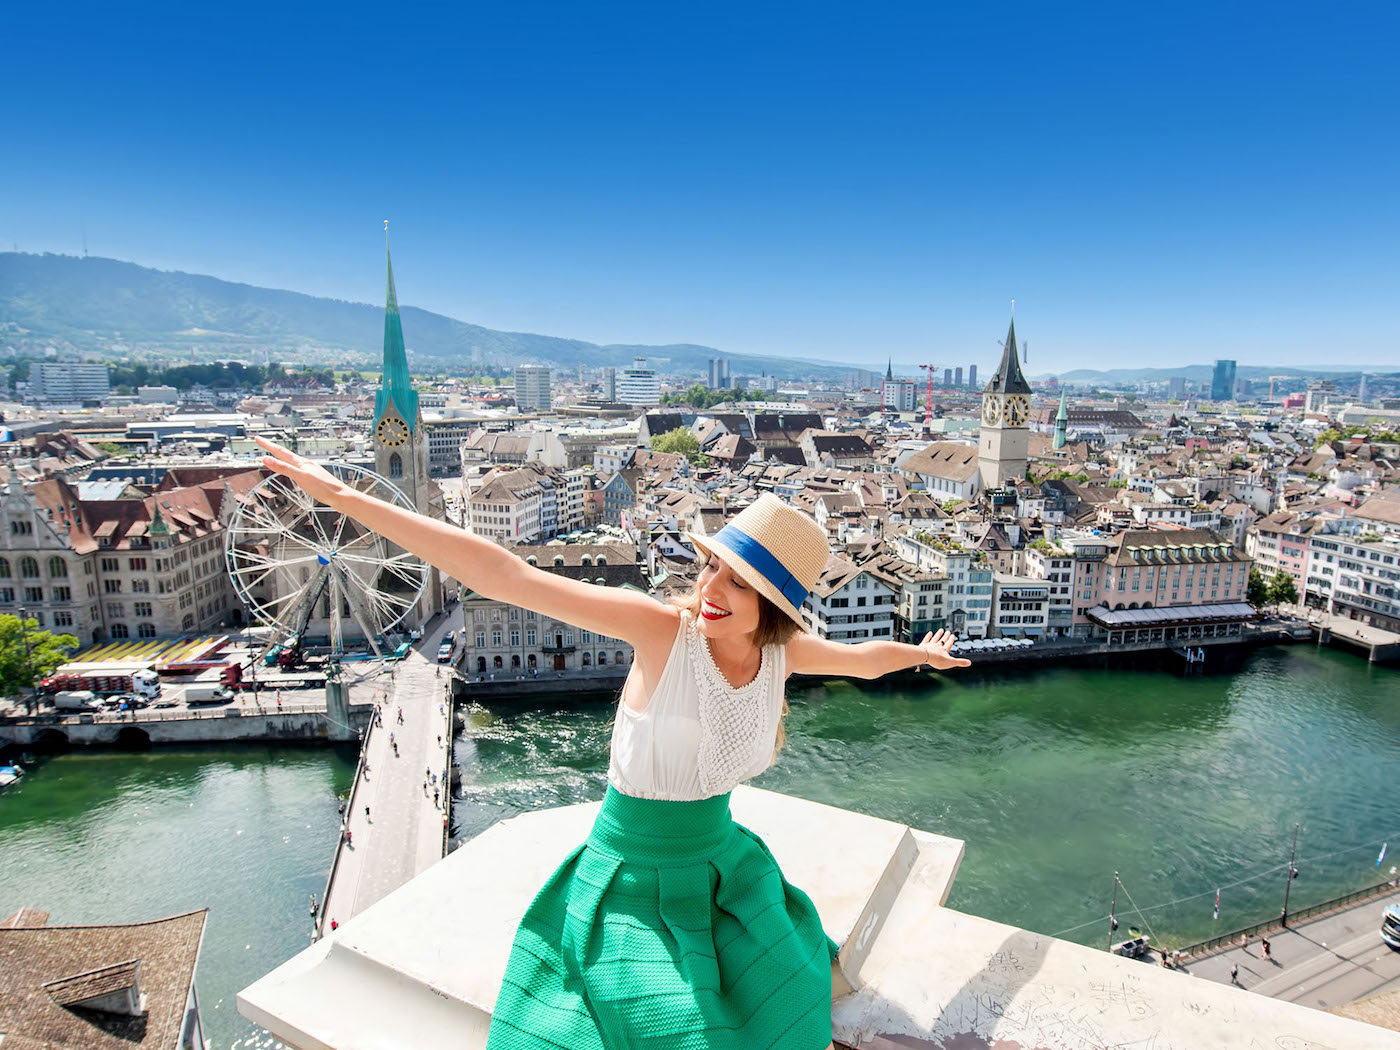 Live and work in Switzerland the easy way